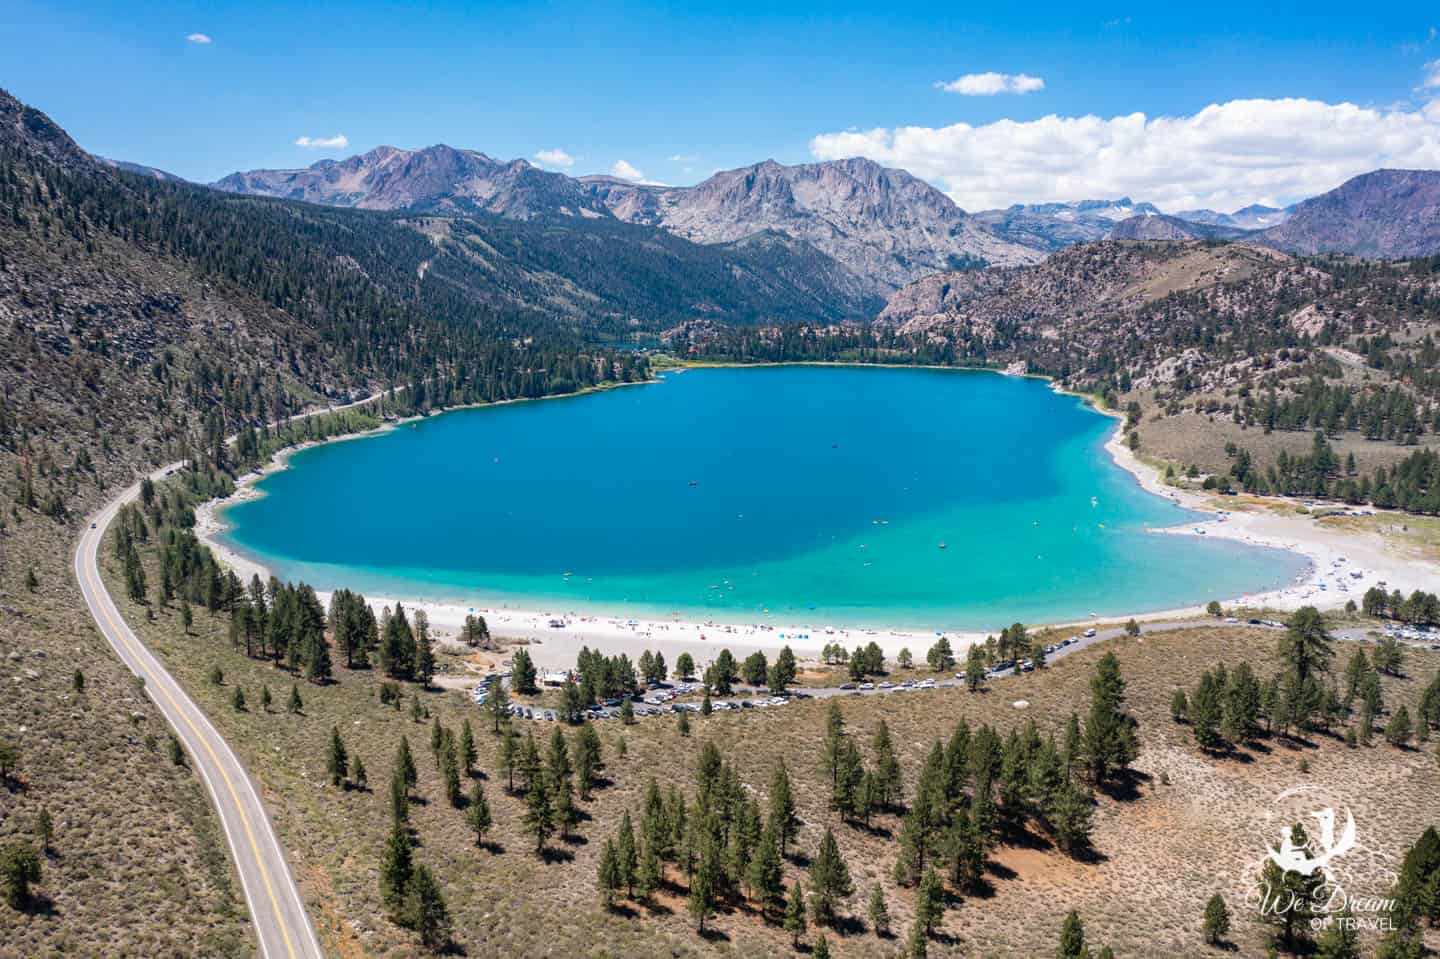 June Lakes Loop drone photography featuring June Lake Beach from above.